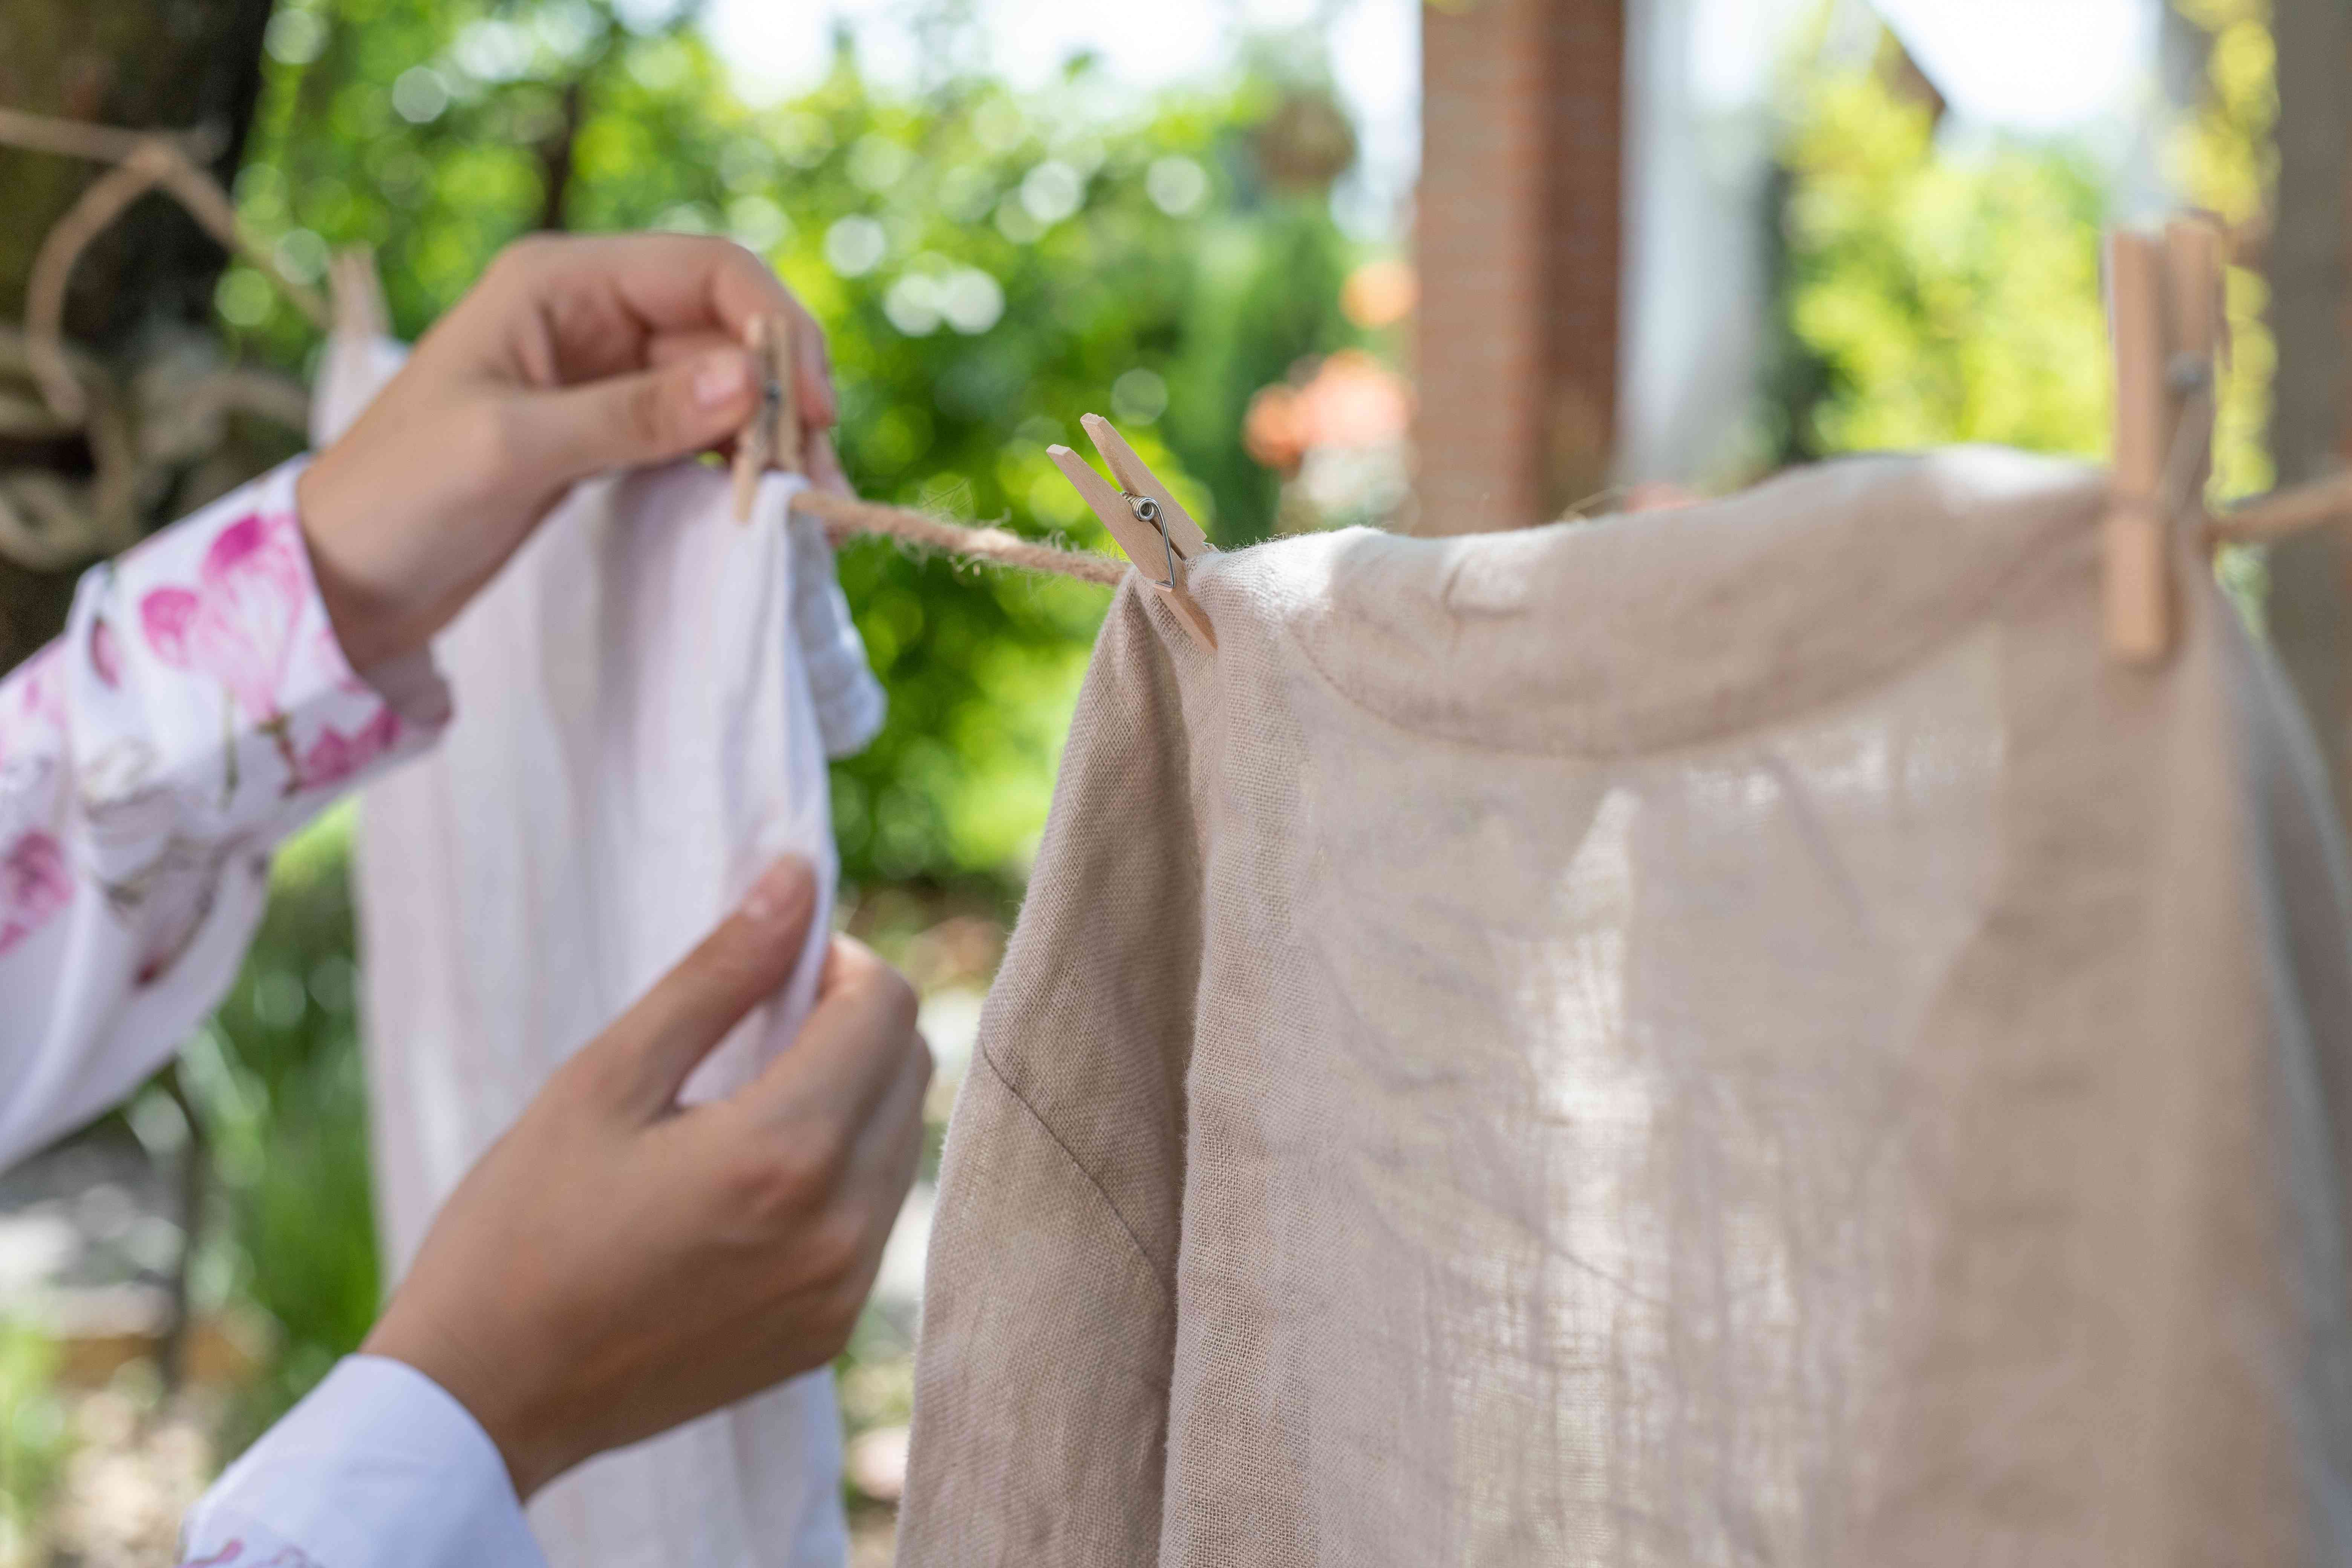 person hangs up white cotton and tan linen clothing on clothesline outside